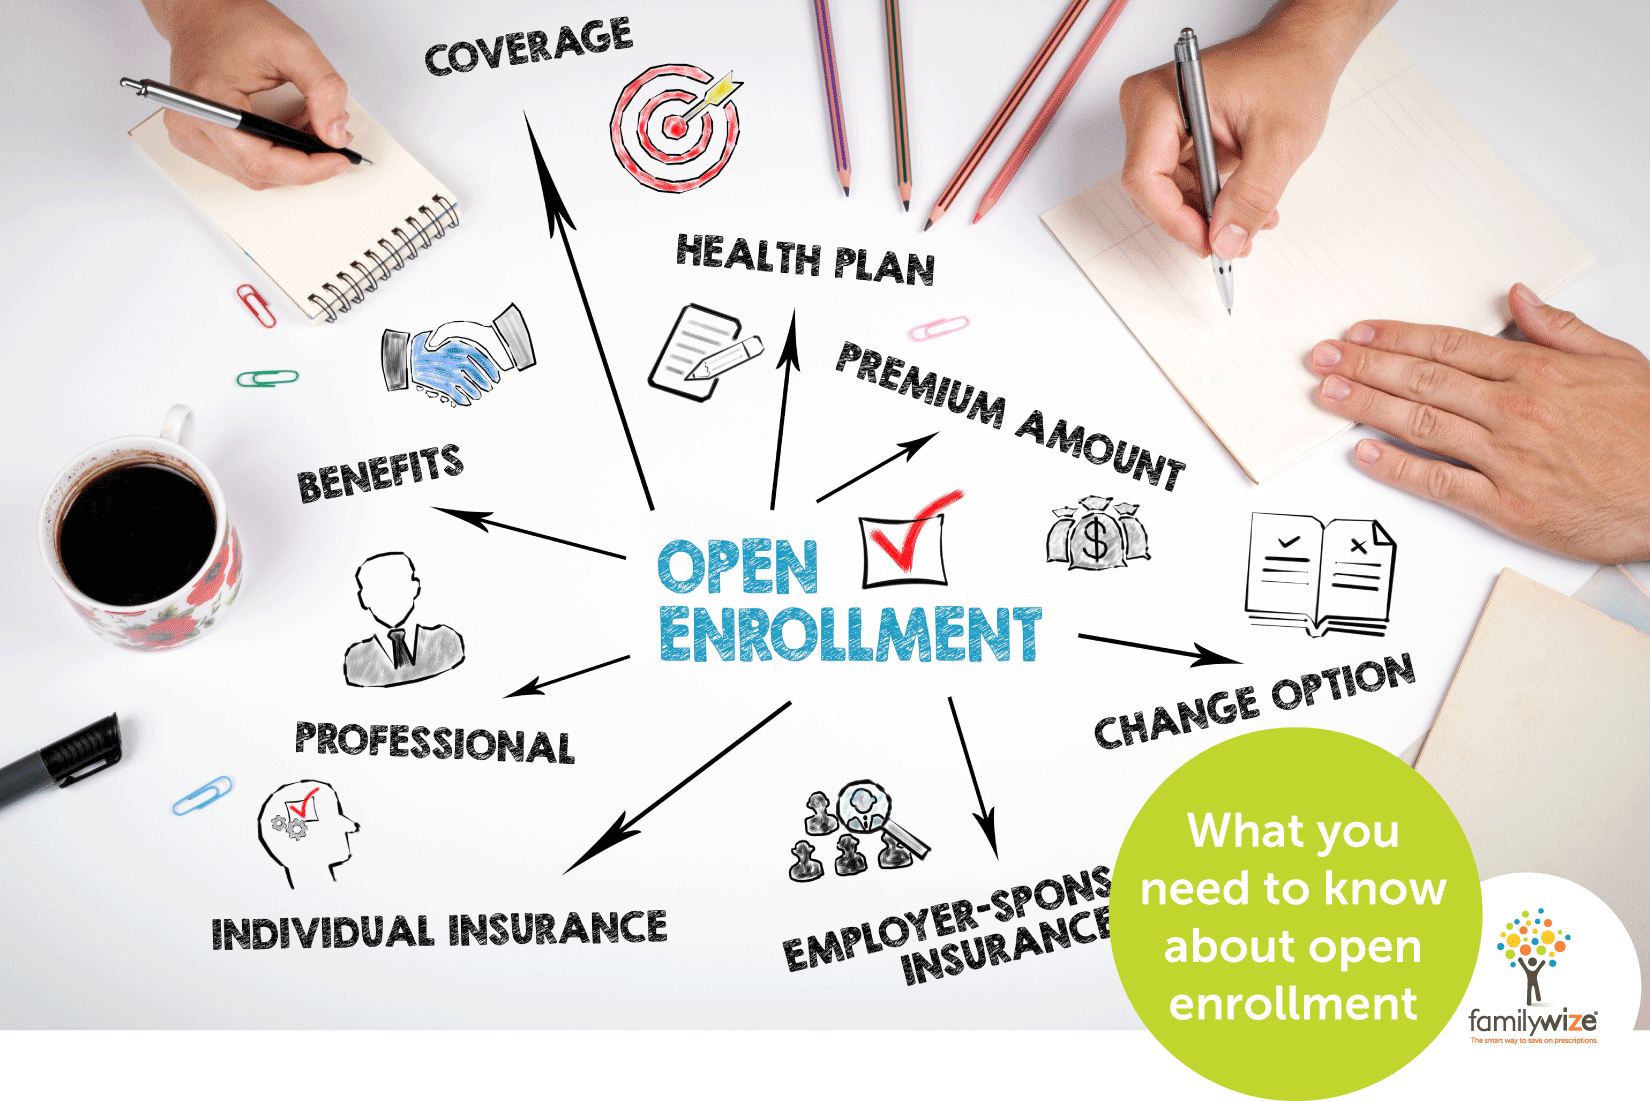 What you need to know about open enrollment